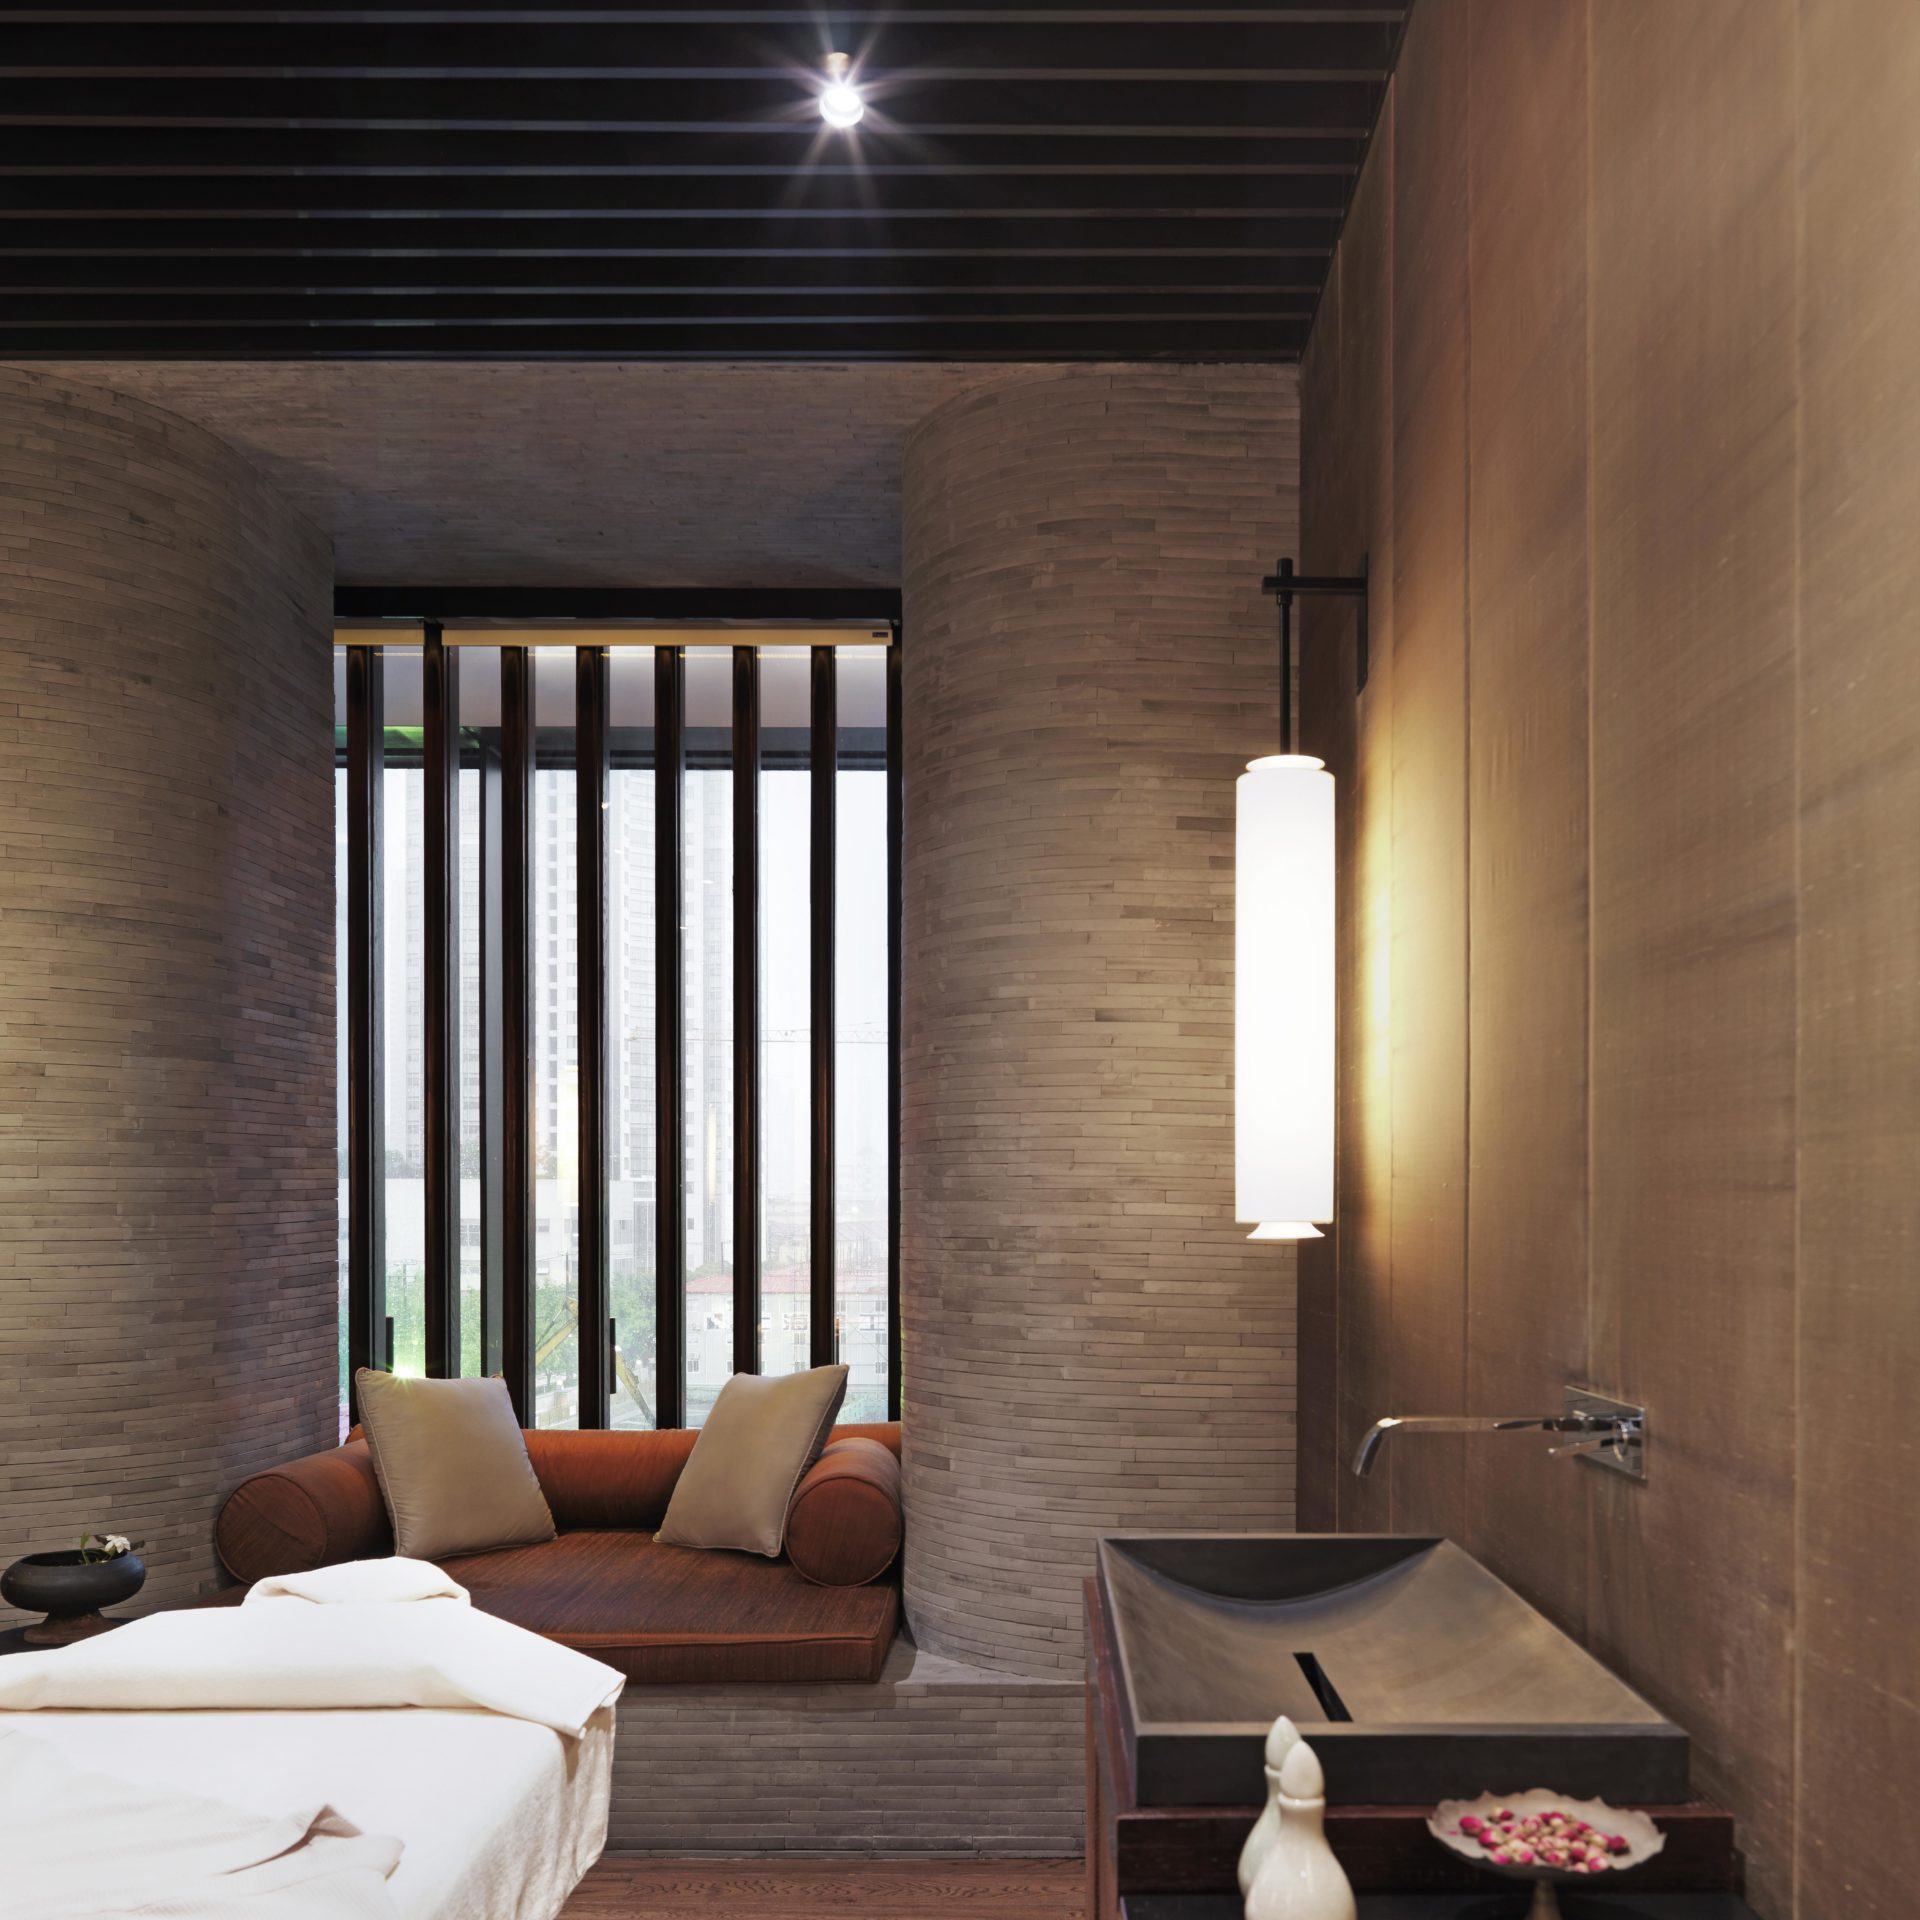 Photo courtesy of Anantara Spa